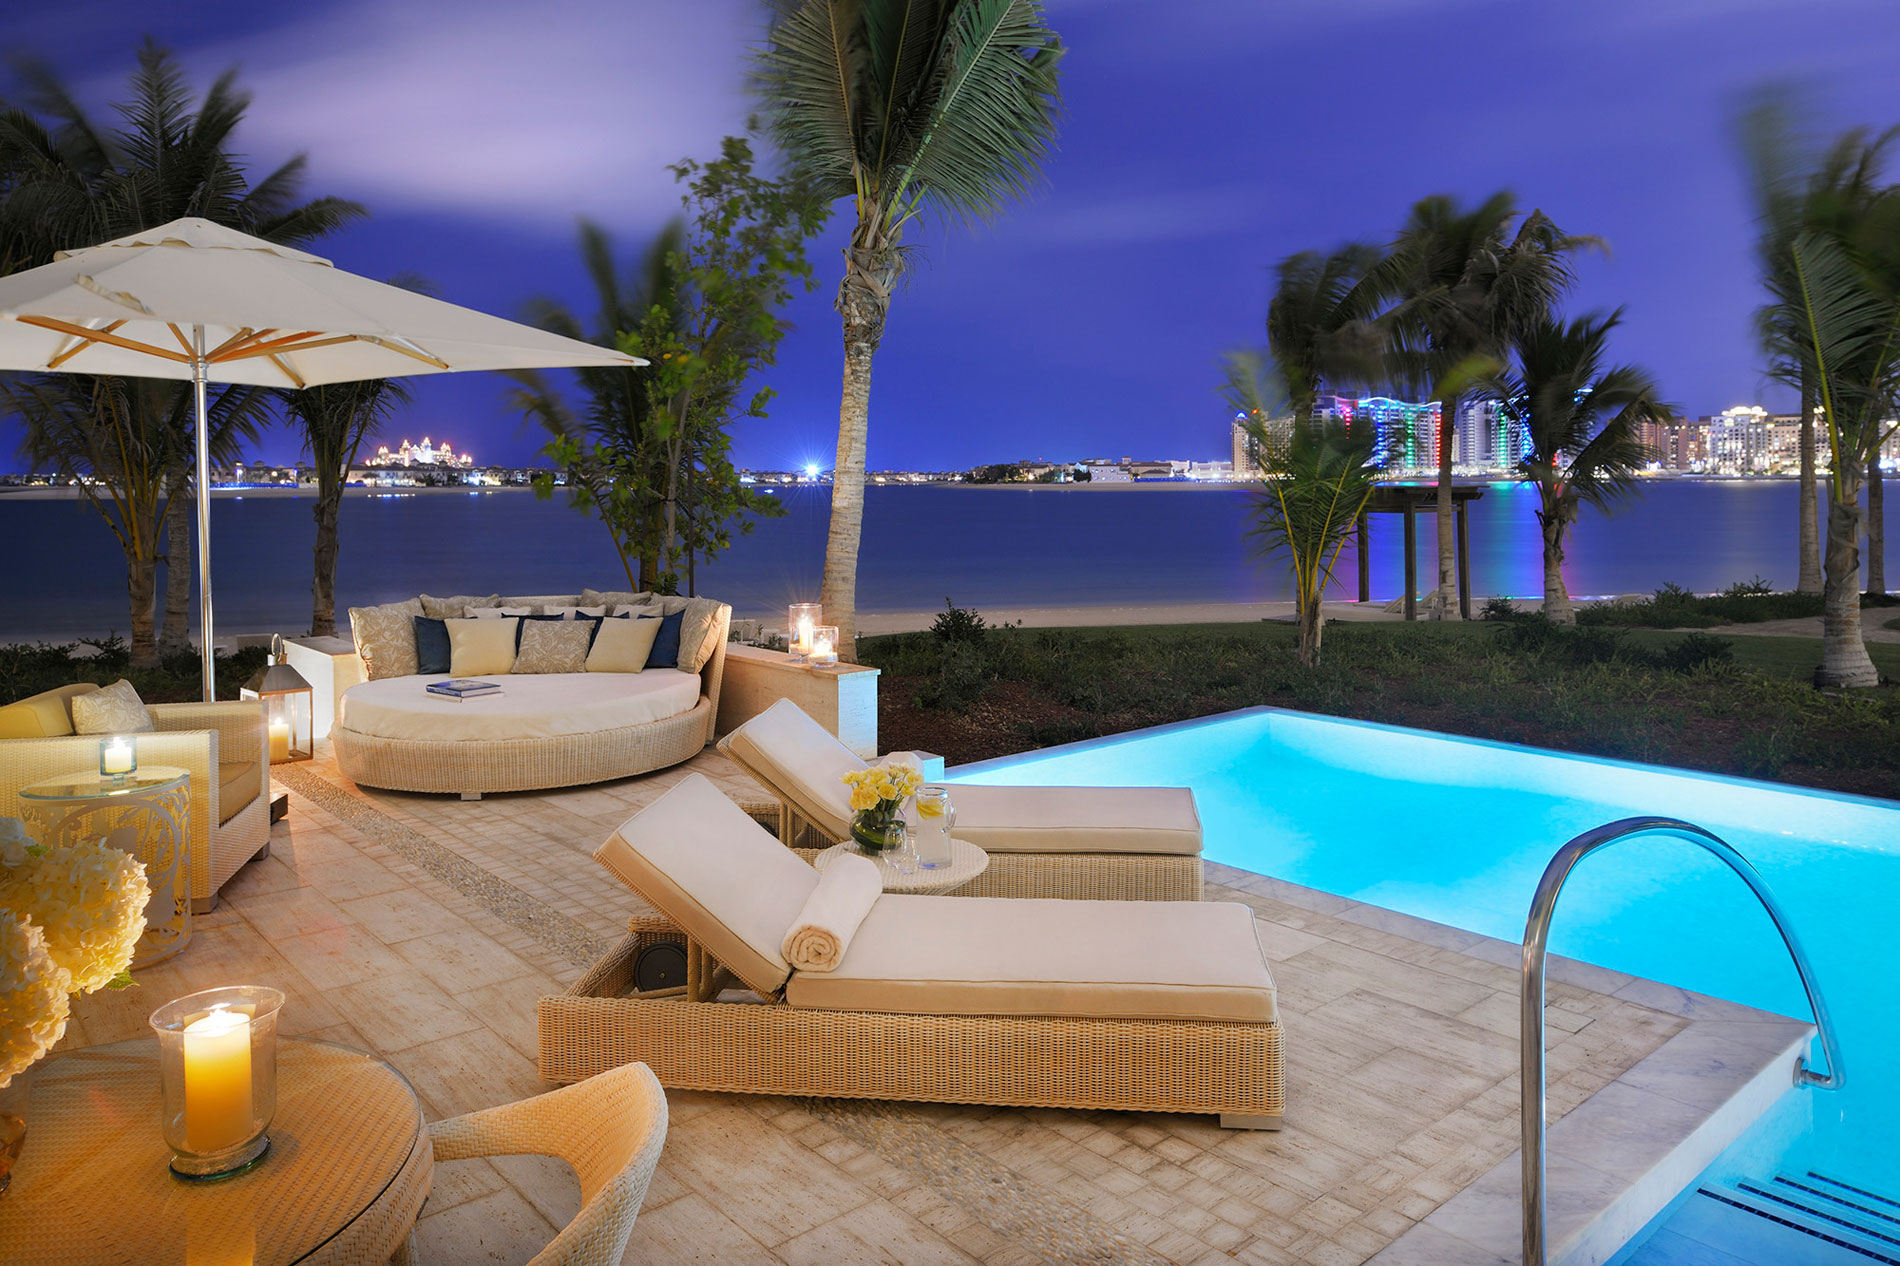 Incredible-One-Only-The-Palm-Luxury-Hotel-in-Dubai-22